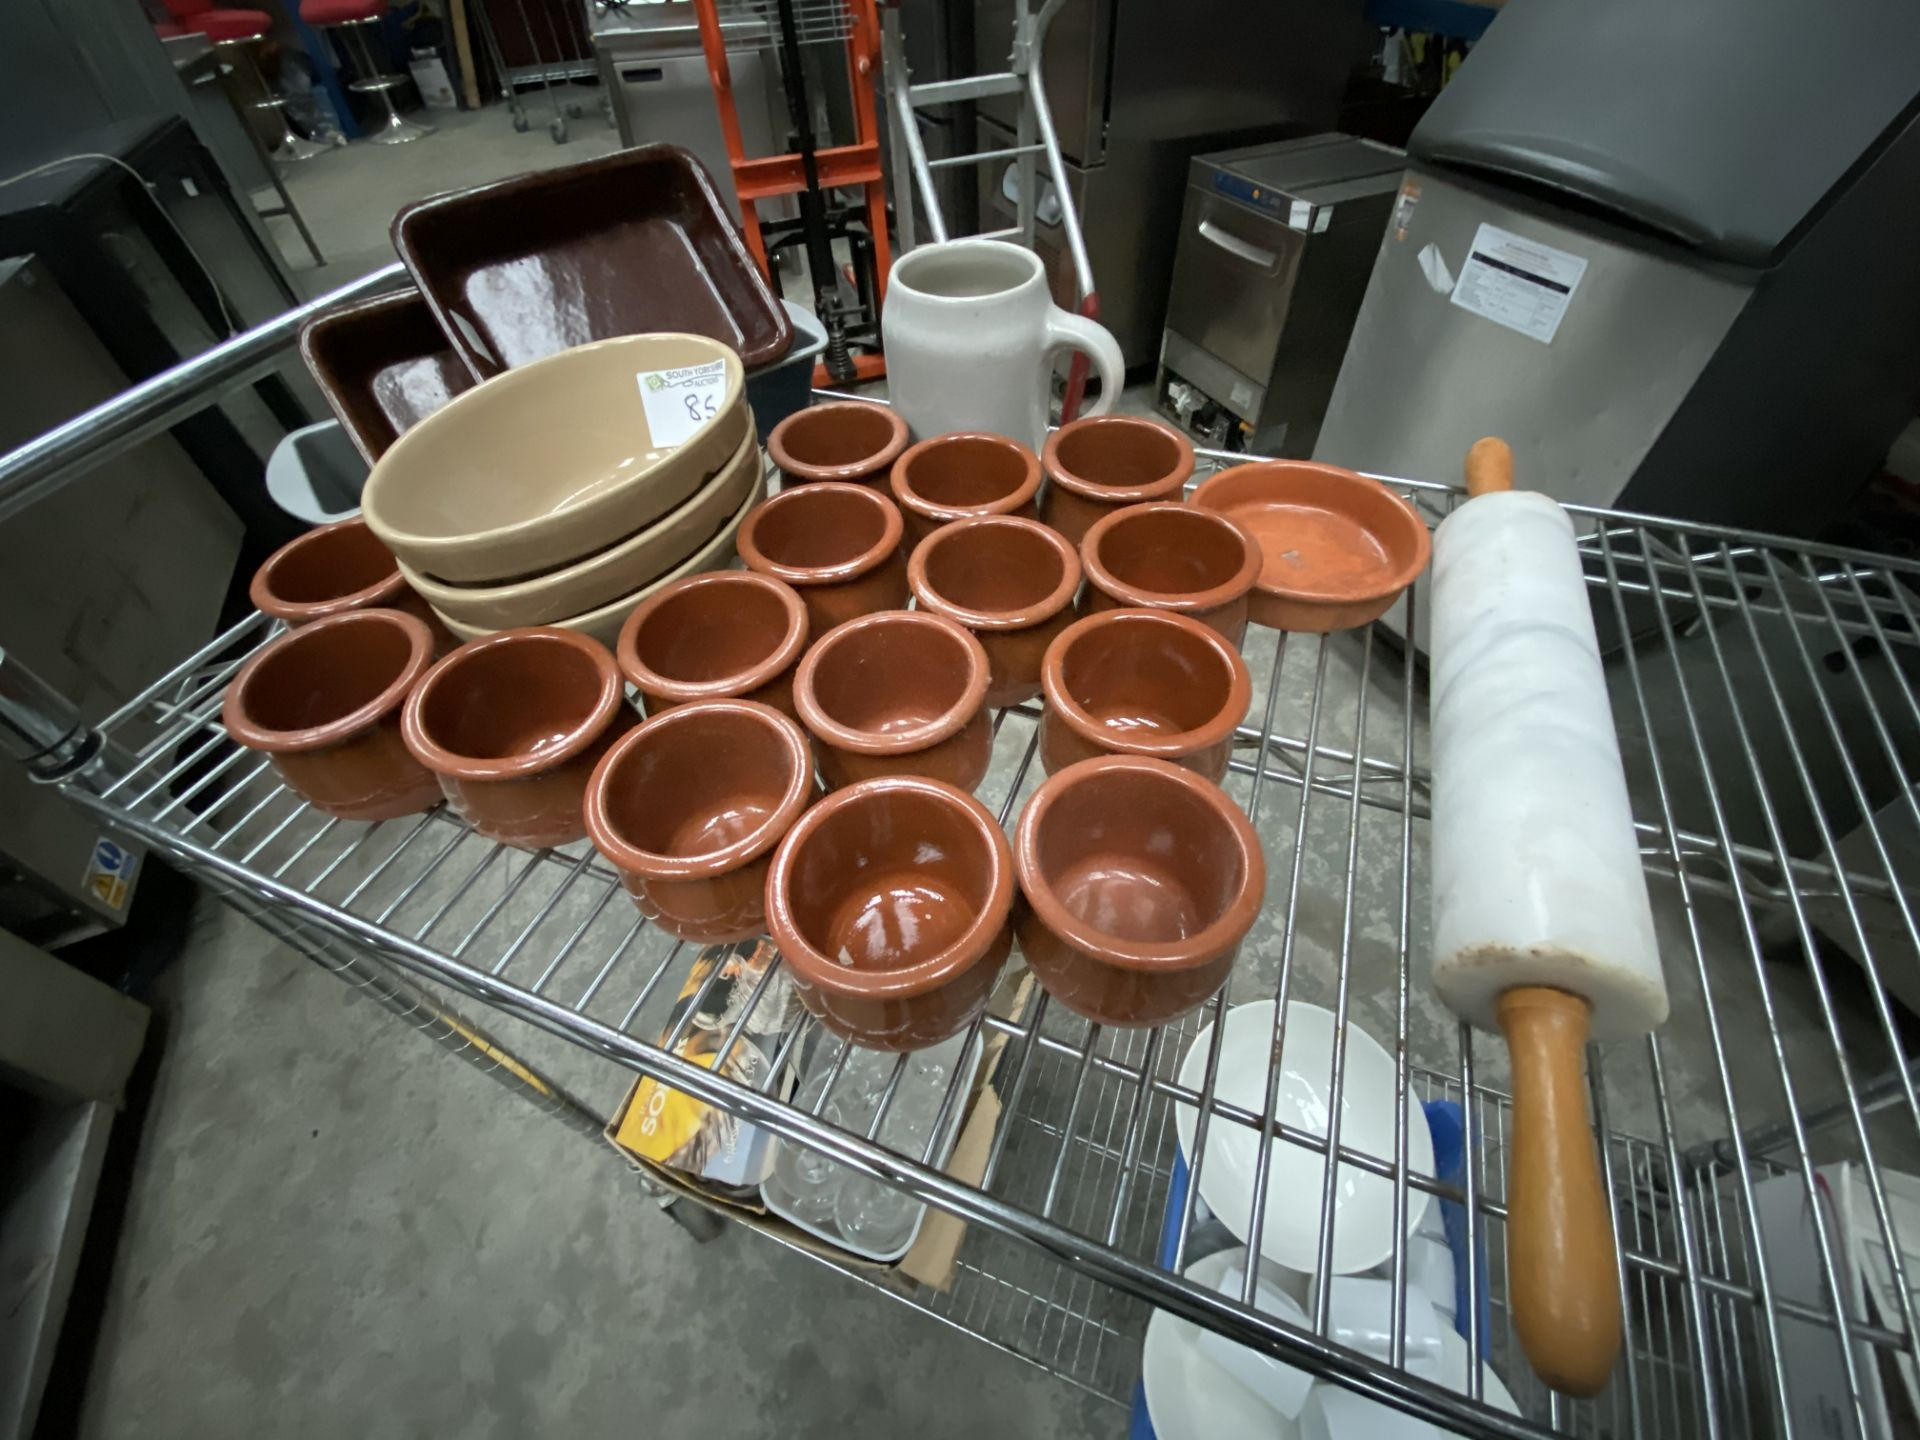 Lot 85 - Stoneware Pots, Pie Dishes Marble Rolling Pin